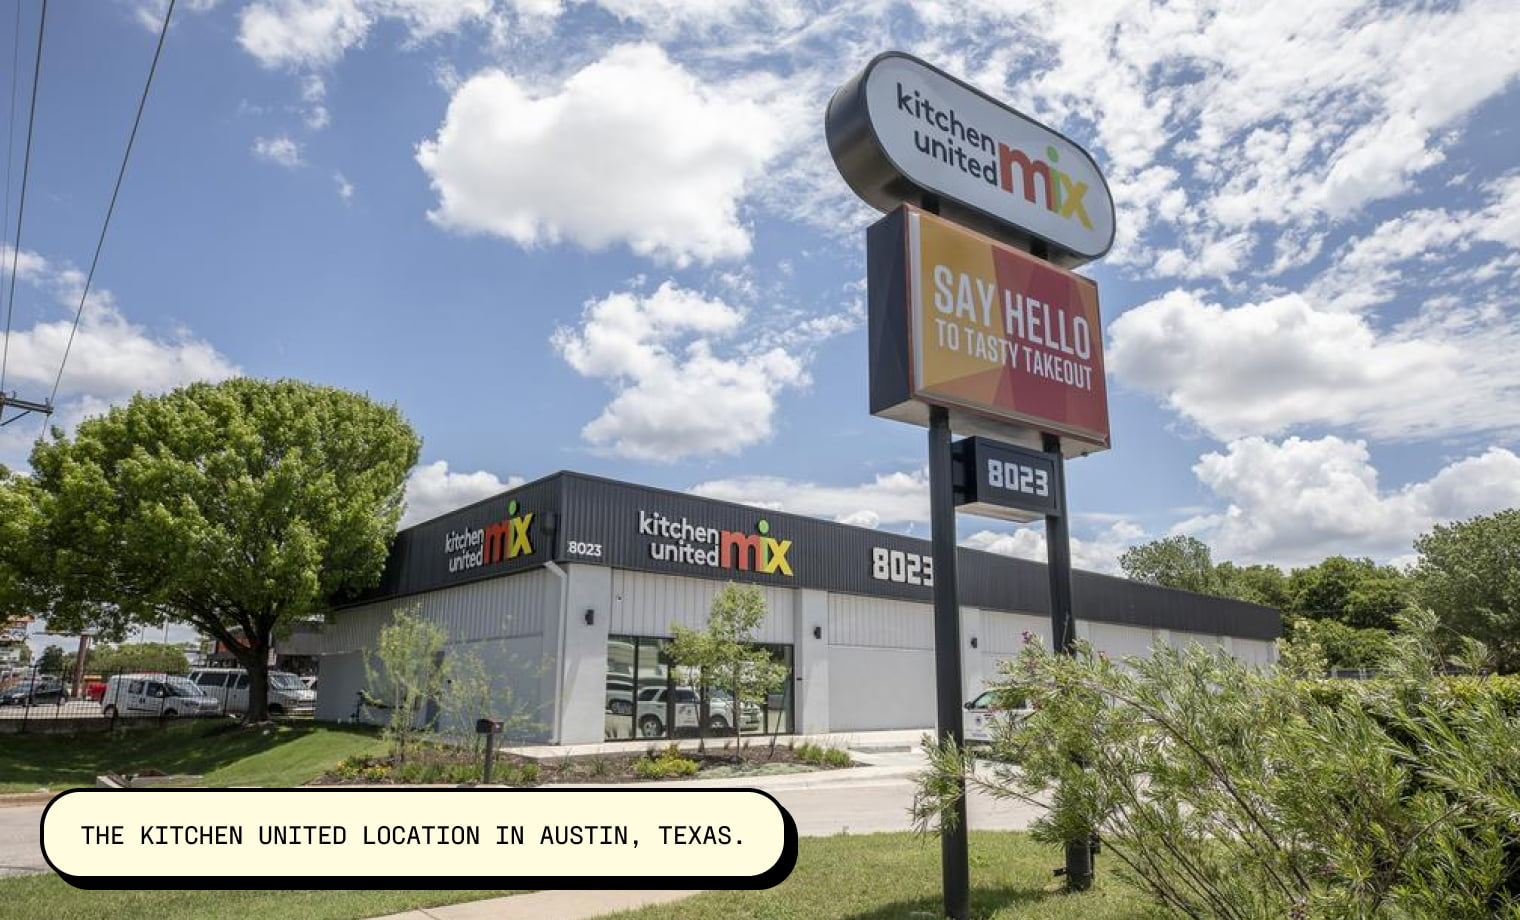 The Kitchen United location in Austin, Texas. Image Source: Arnold Wells for Austin Business Journal